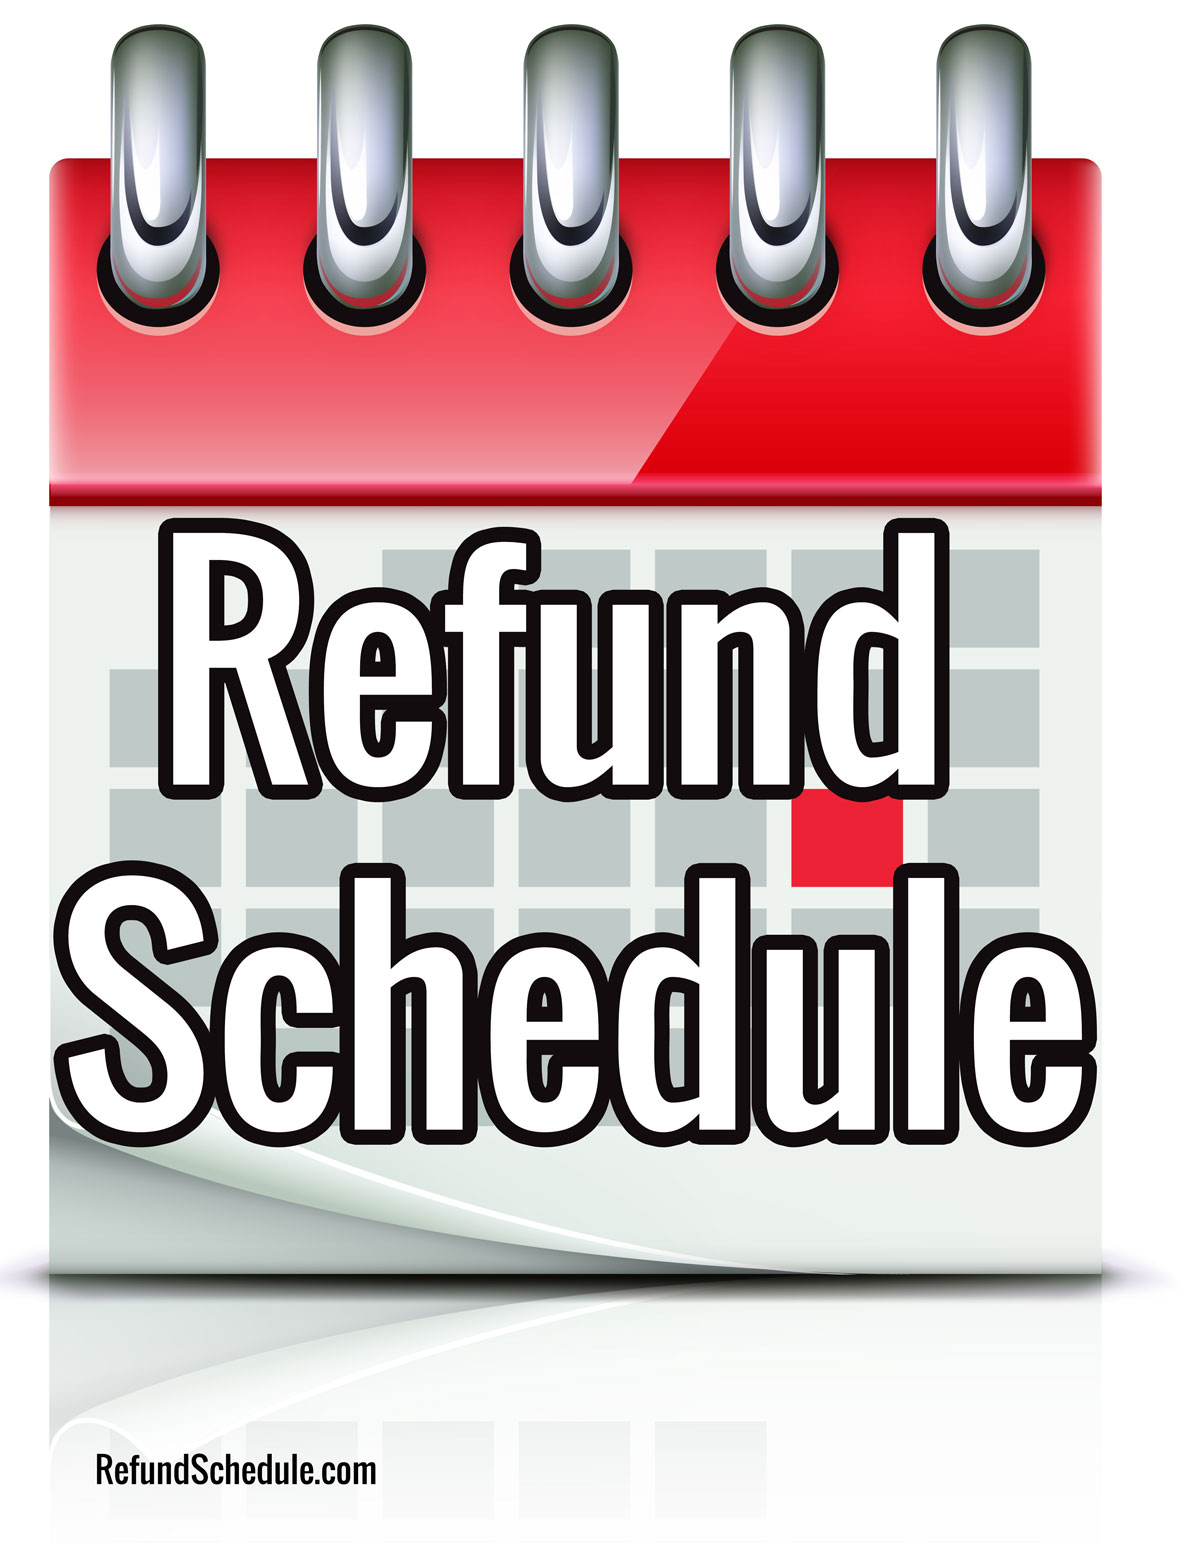 2017 irs refund cycle chart for tax year 2016 irs refund schedule falaconquin